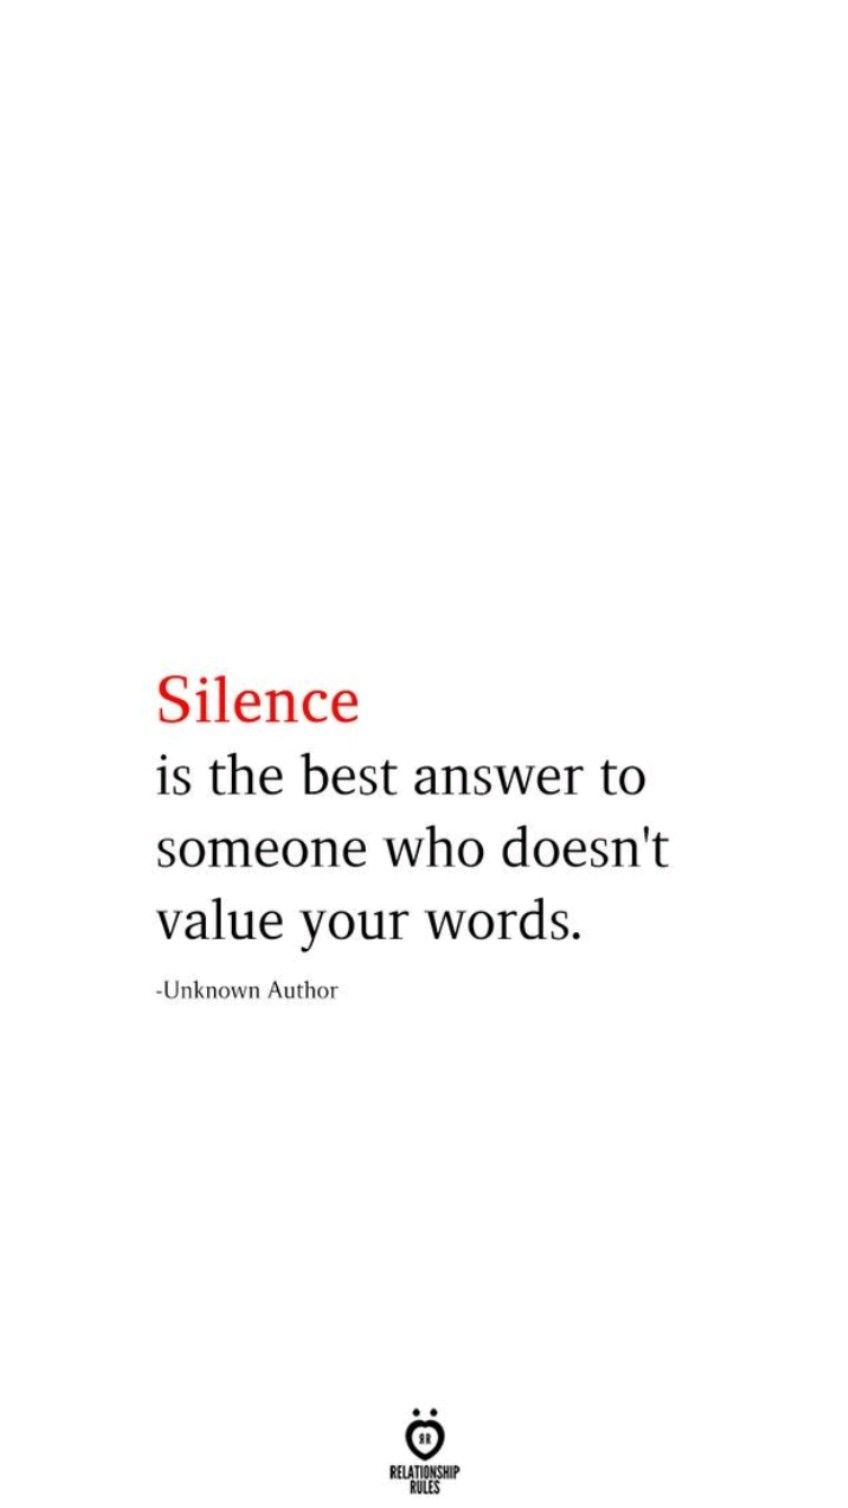 Silence is Bliss! Be wise & use your intuition 💙